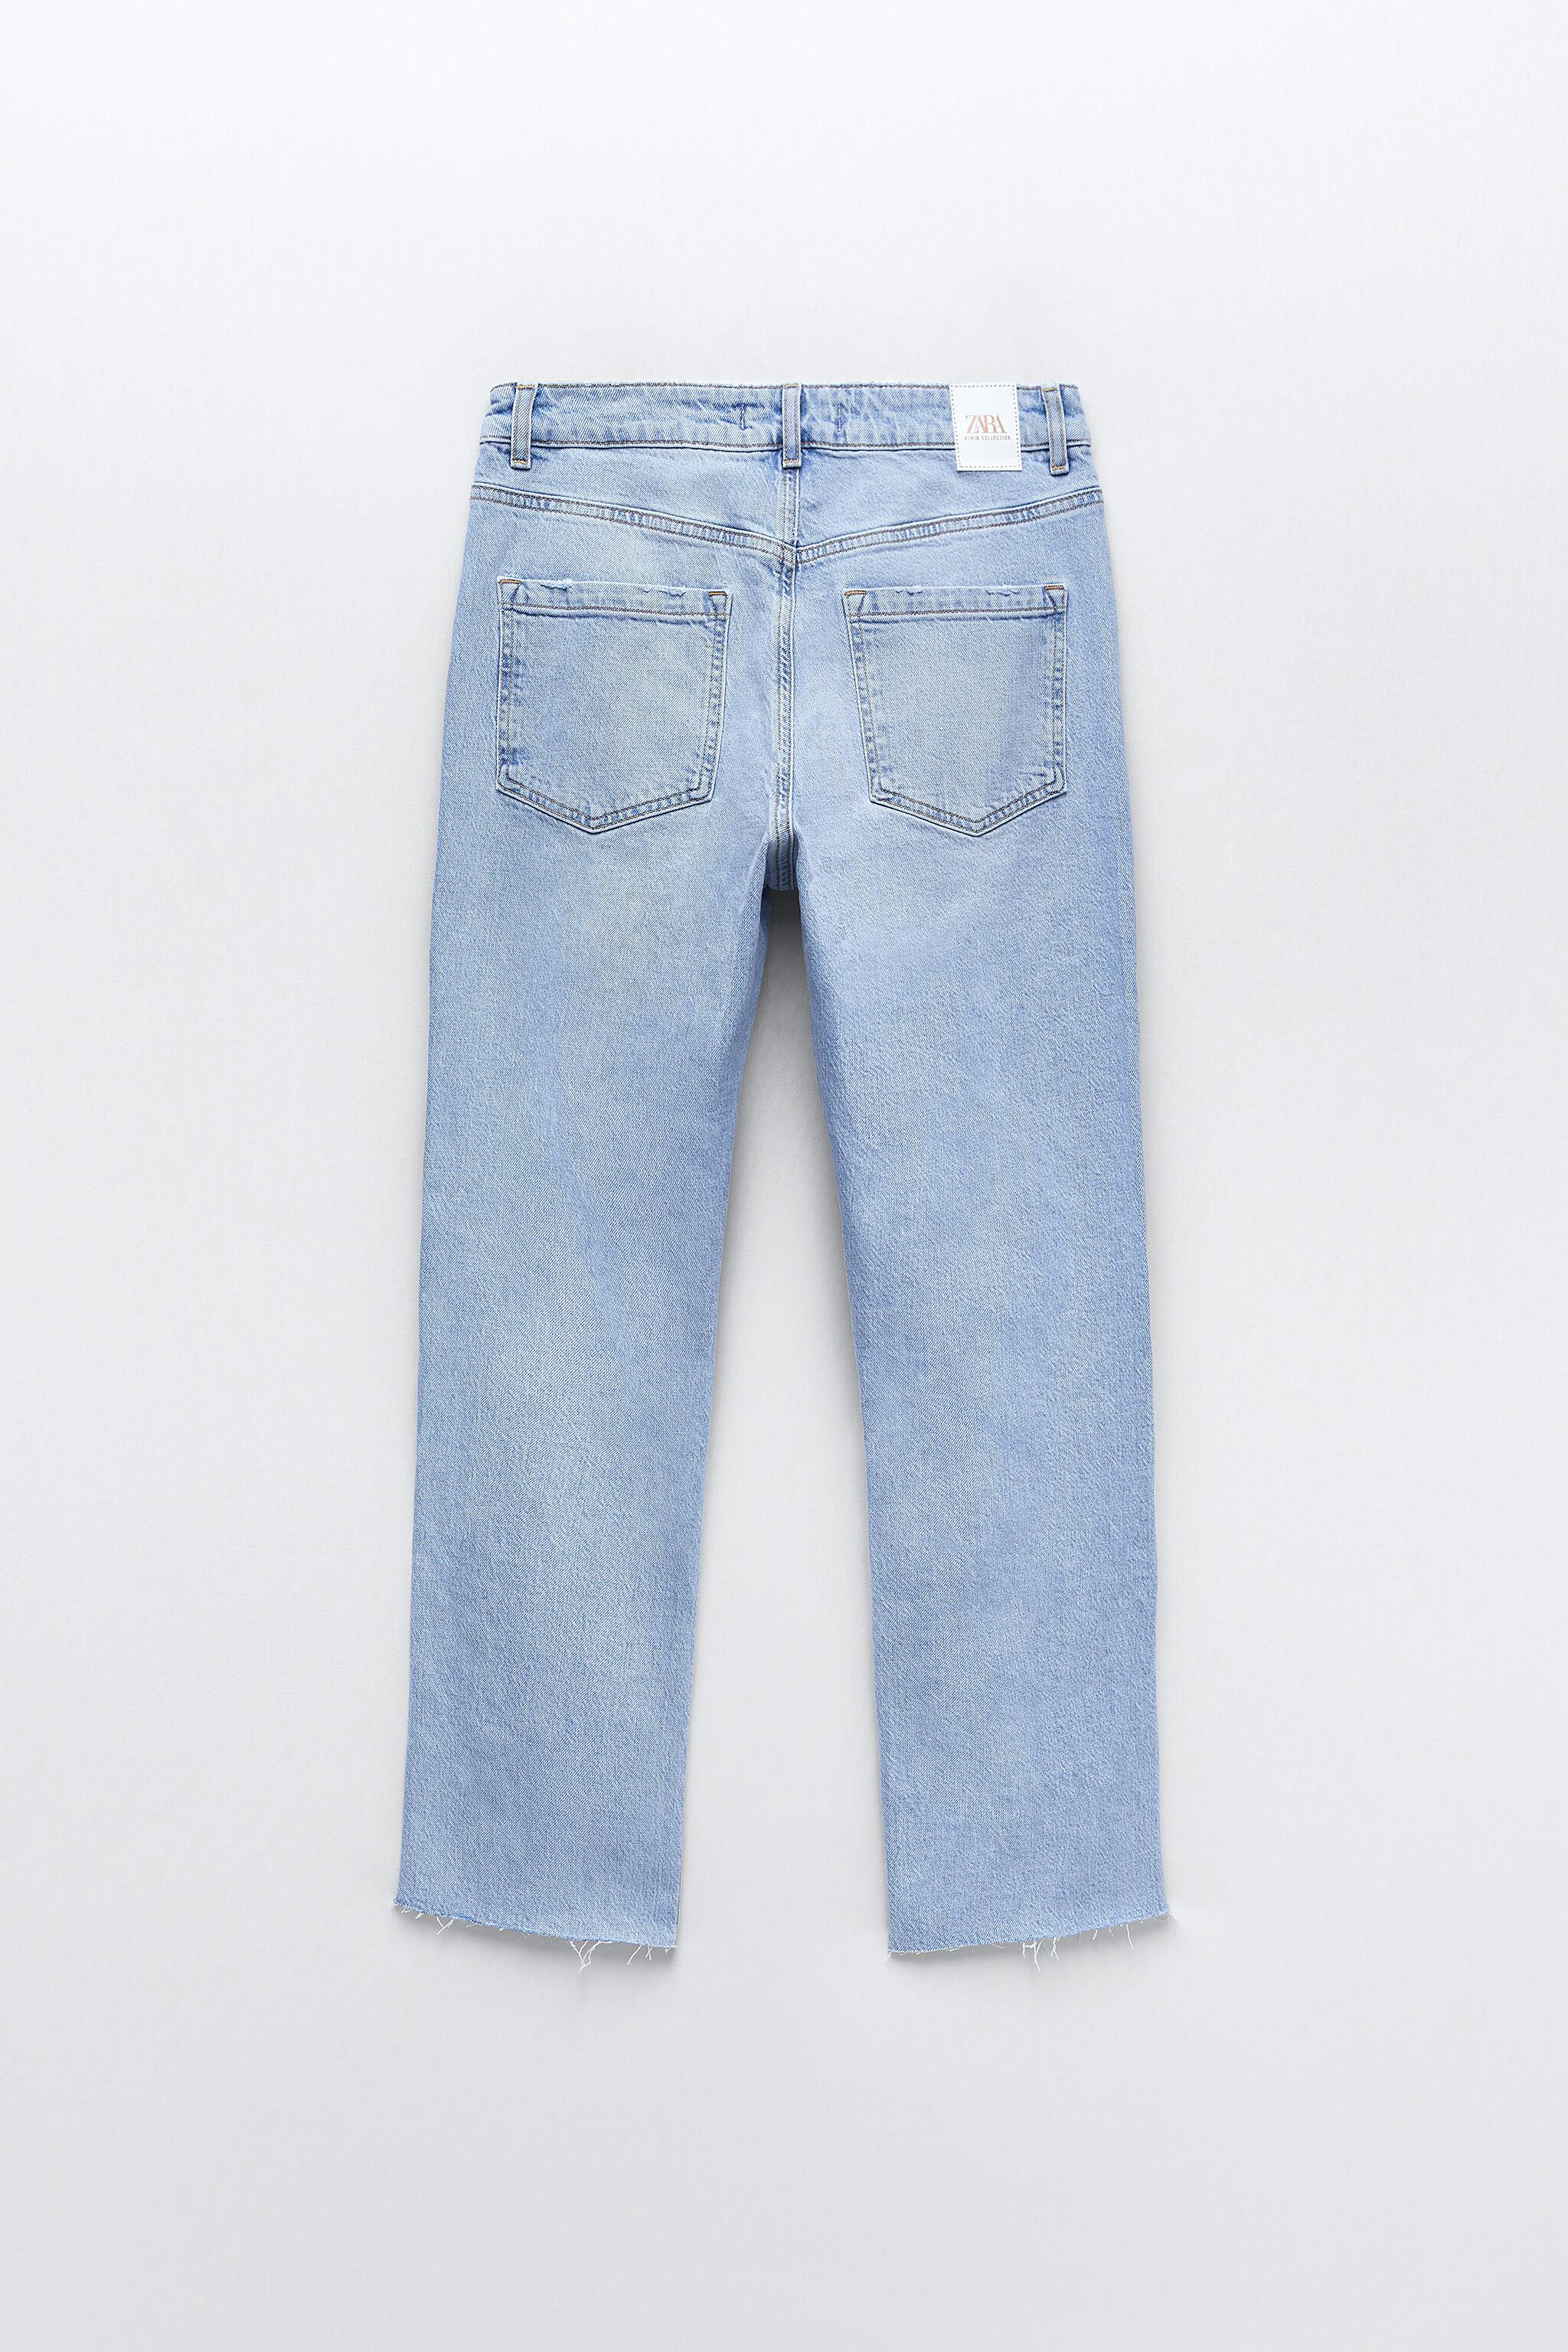 Z1975 HIGH RISE JEANS 8